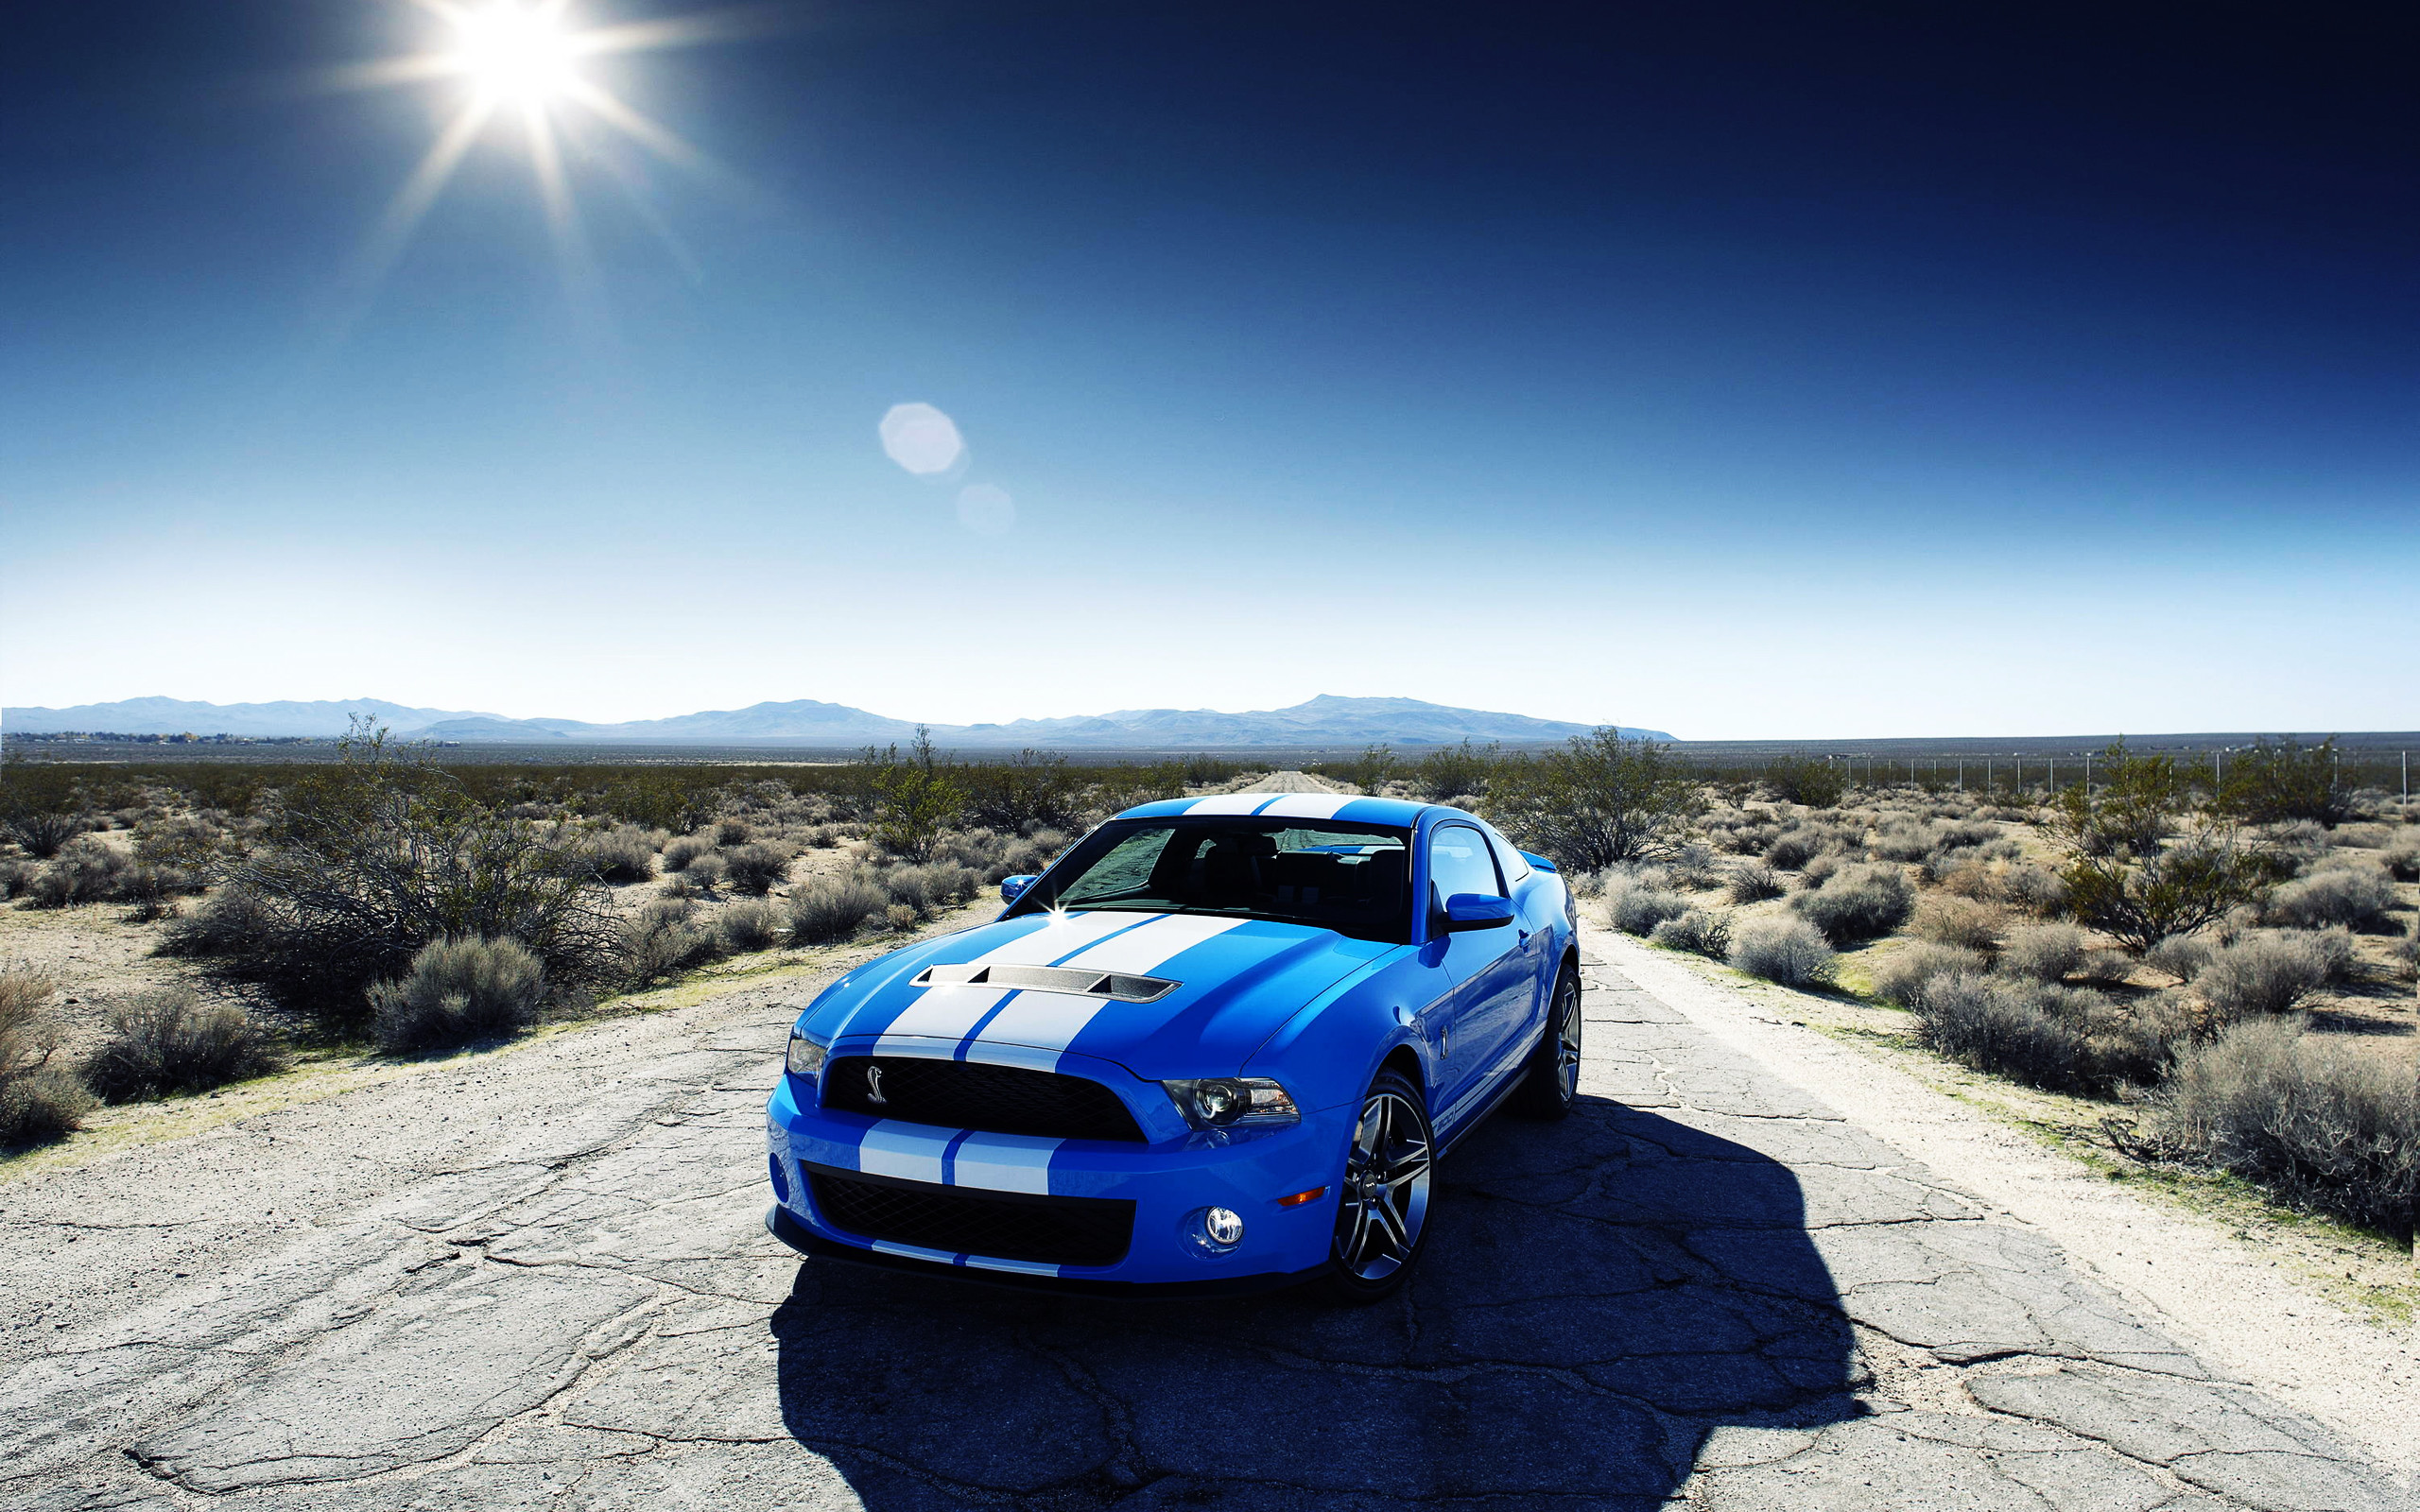 2560x1600 Ford Shelby GT500 Car Wallpapers | HD Wallpapers